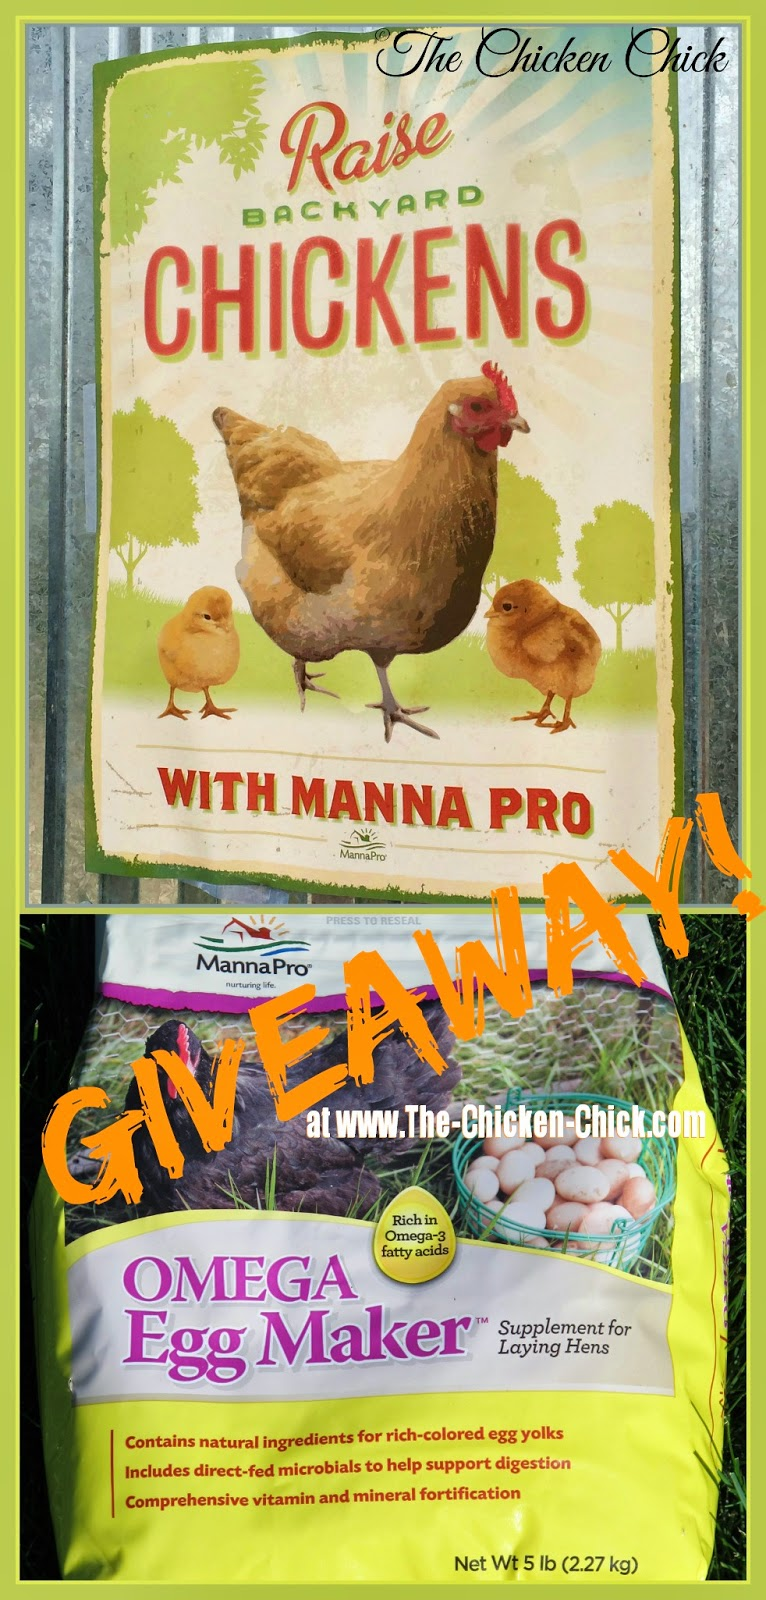 Manna Pro Poultry Vintage looking poster and Omega Egg Maker Prize package giveaway